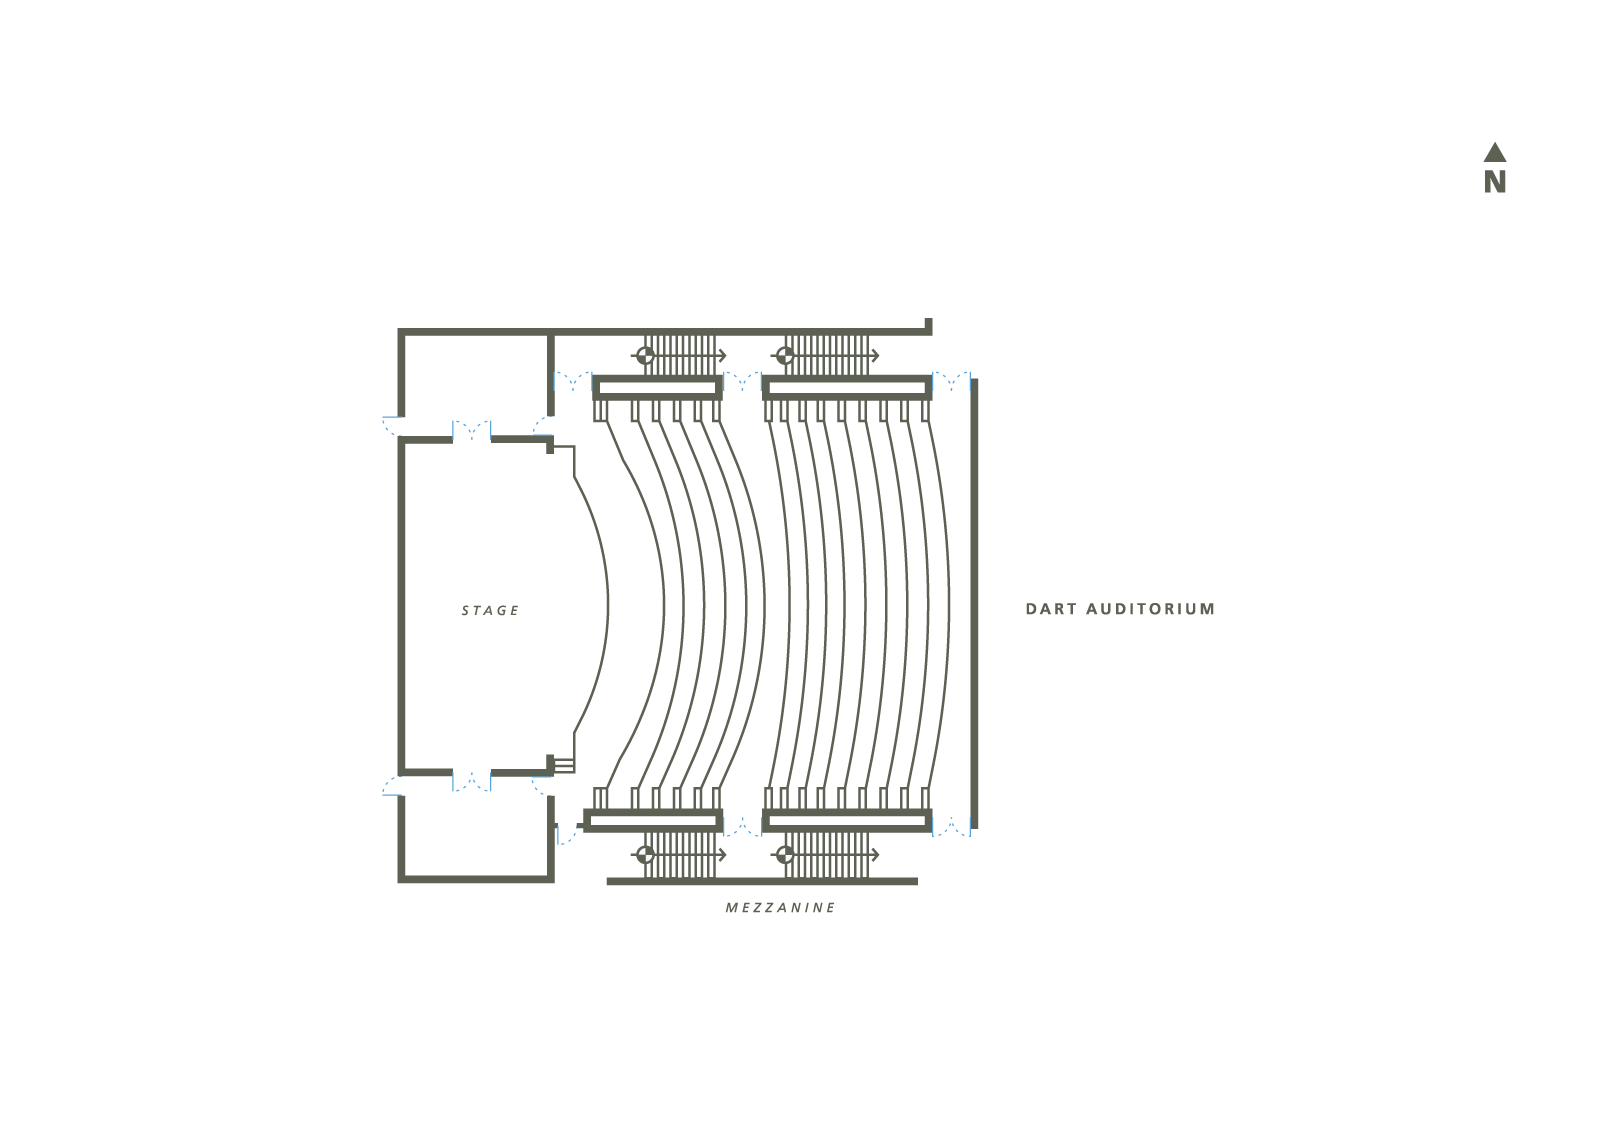 Dart Auditorium Floor Plan